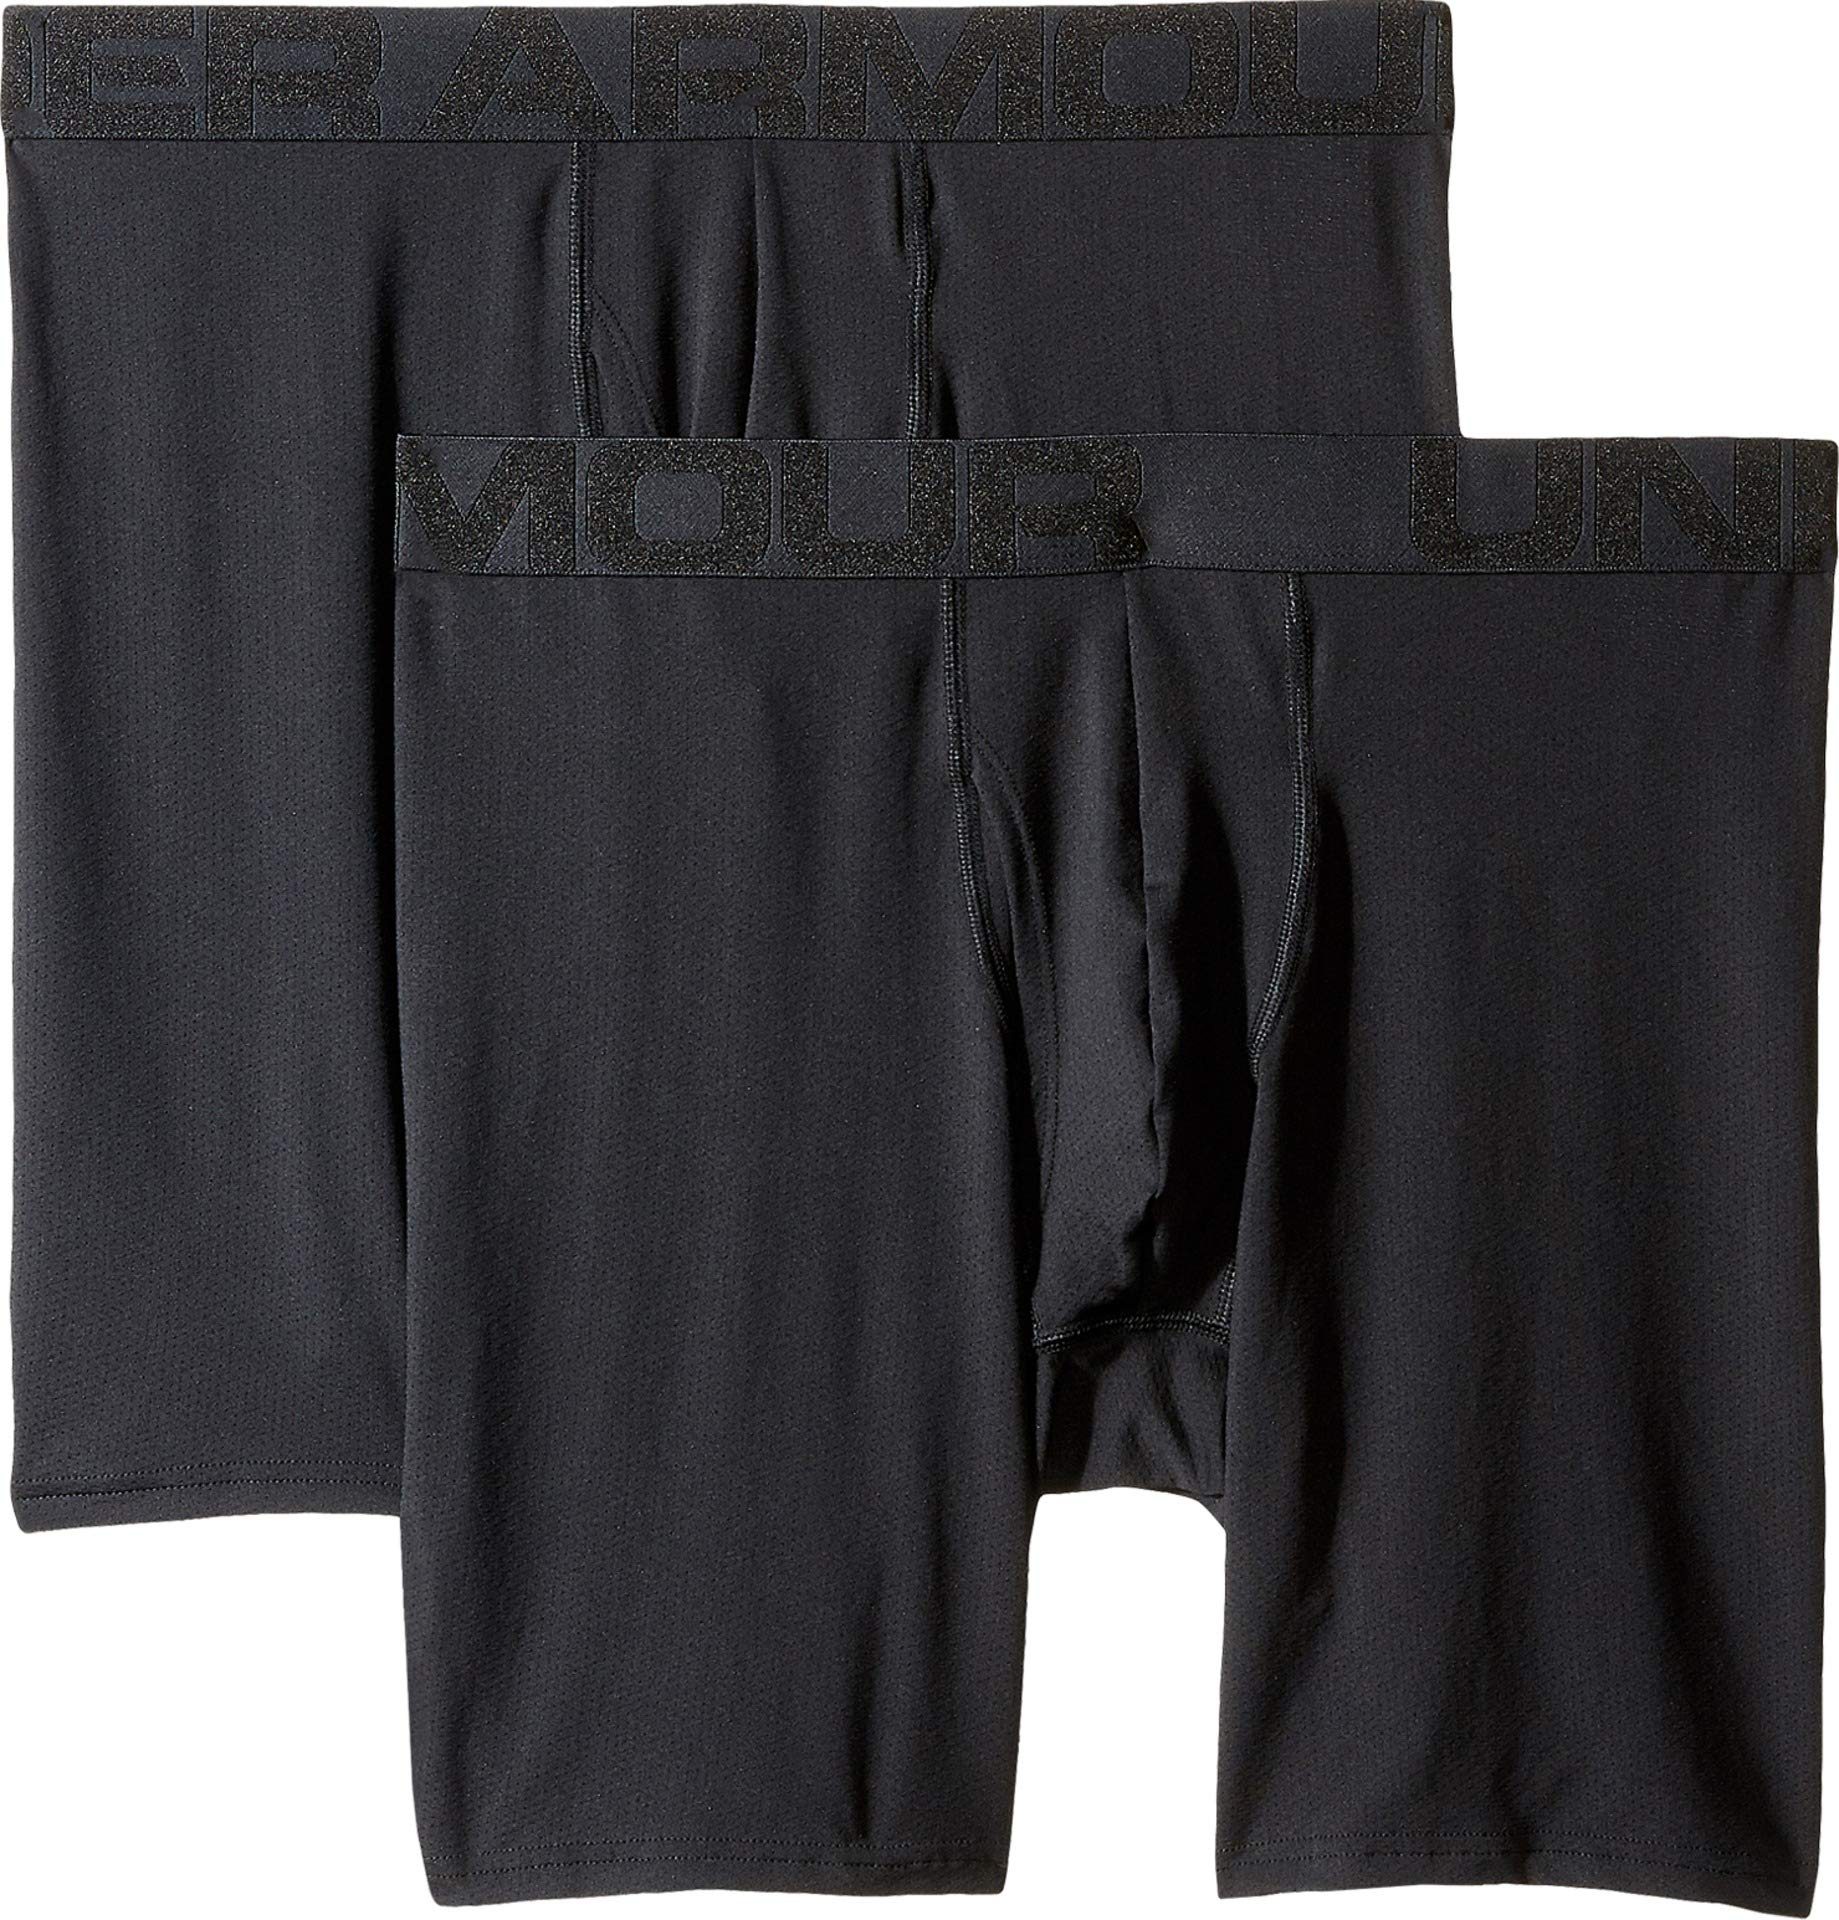 Under Armour Men's Tech Mesh 9'' Boxerjock Boxer Briefs - 2 Pack, Black//Jet Gray Light Heather, Medium by Under Armour